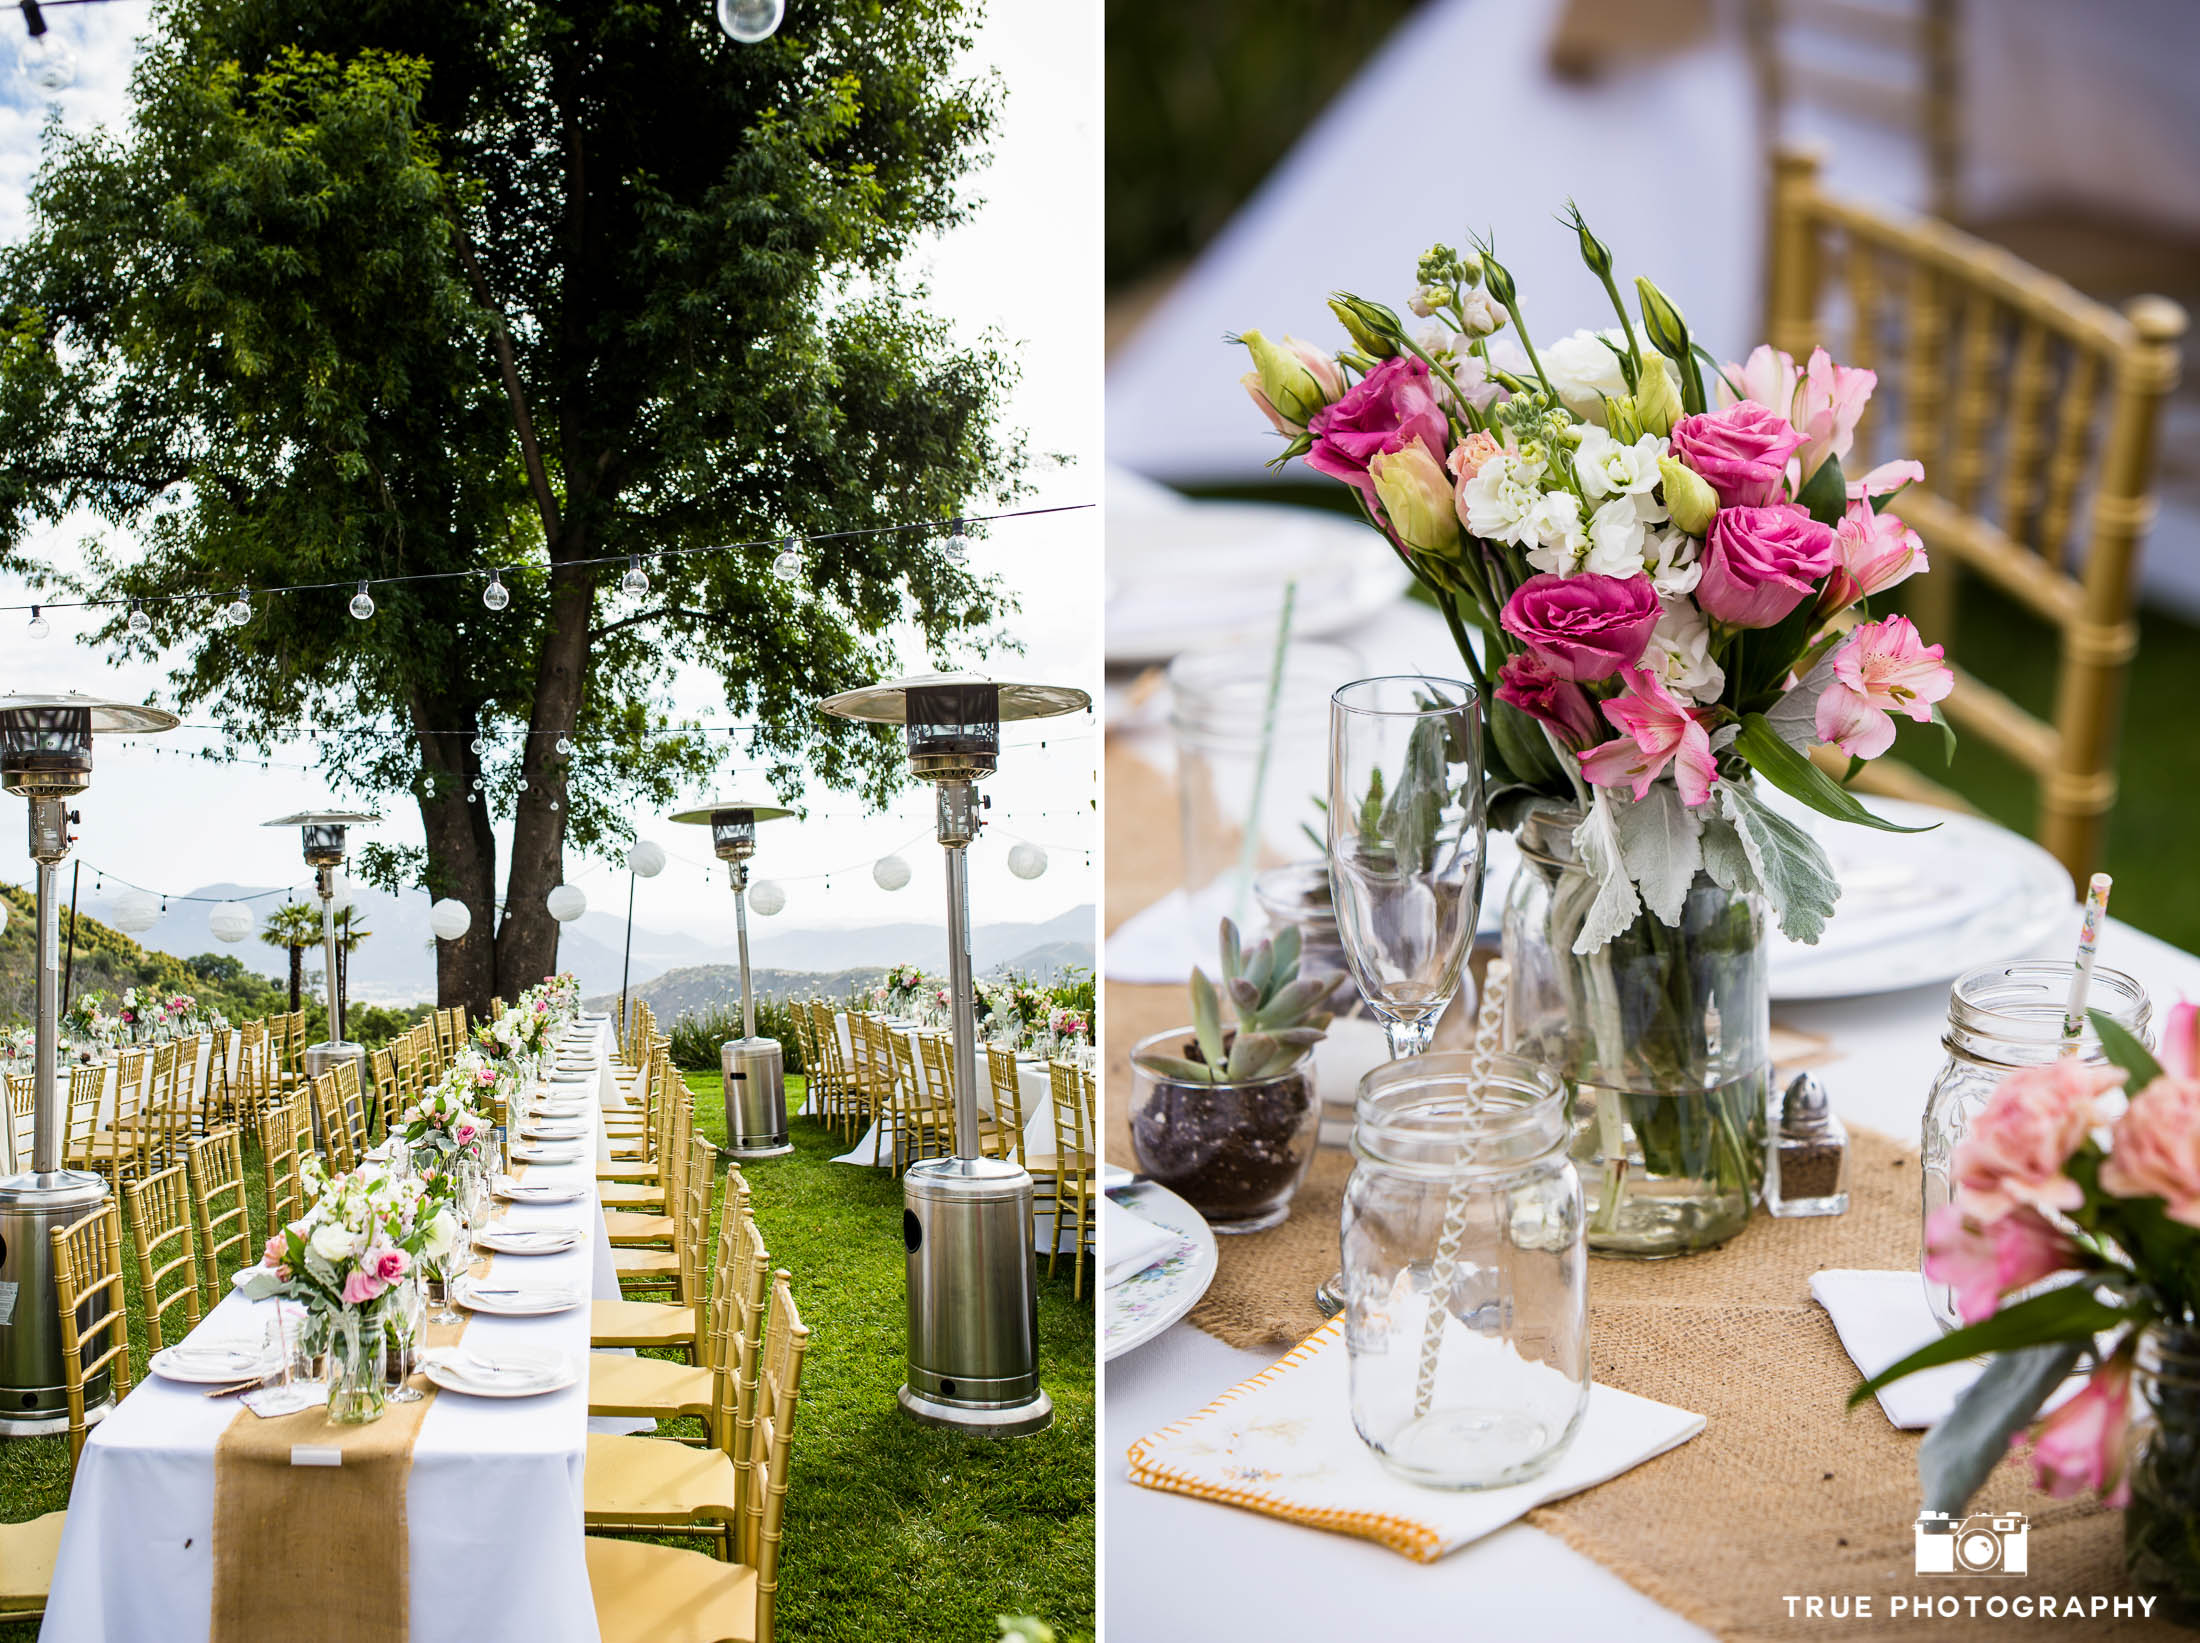 Colorful pink, green and white centerpieces during rustic outdoor wedding reception on ranch